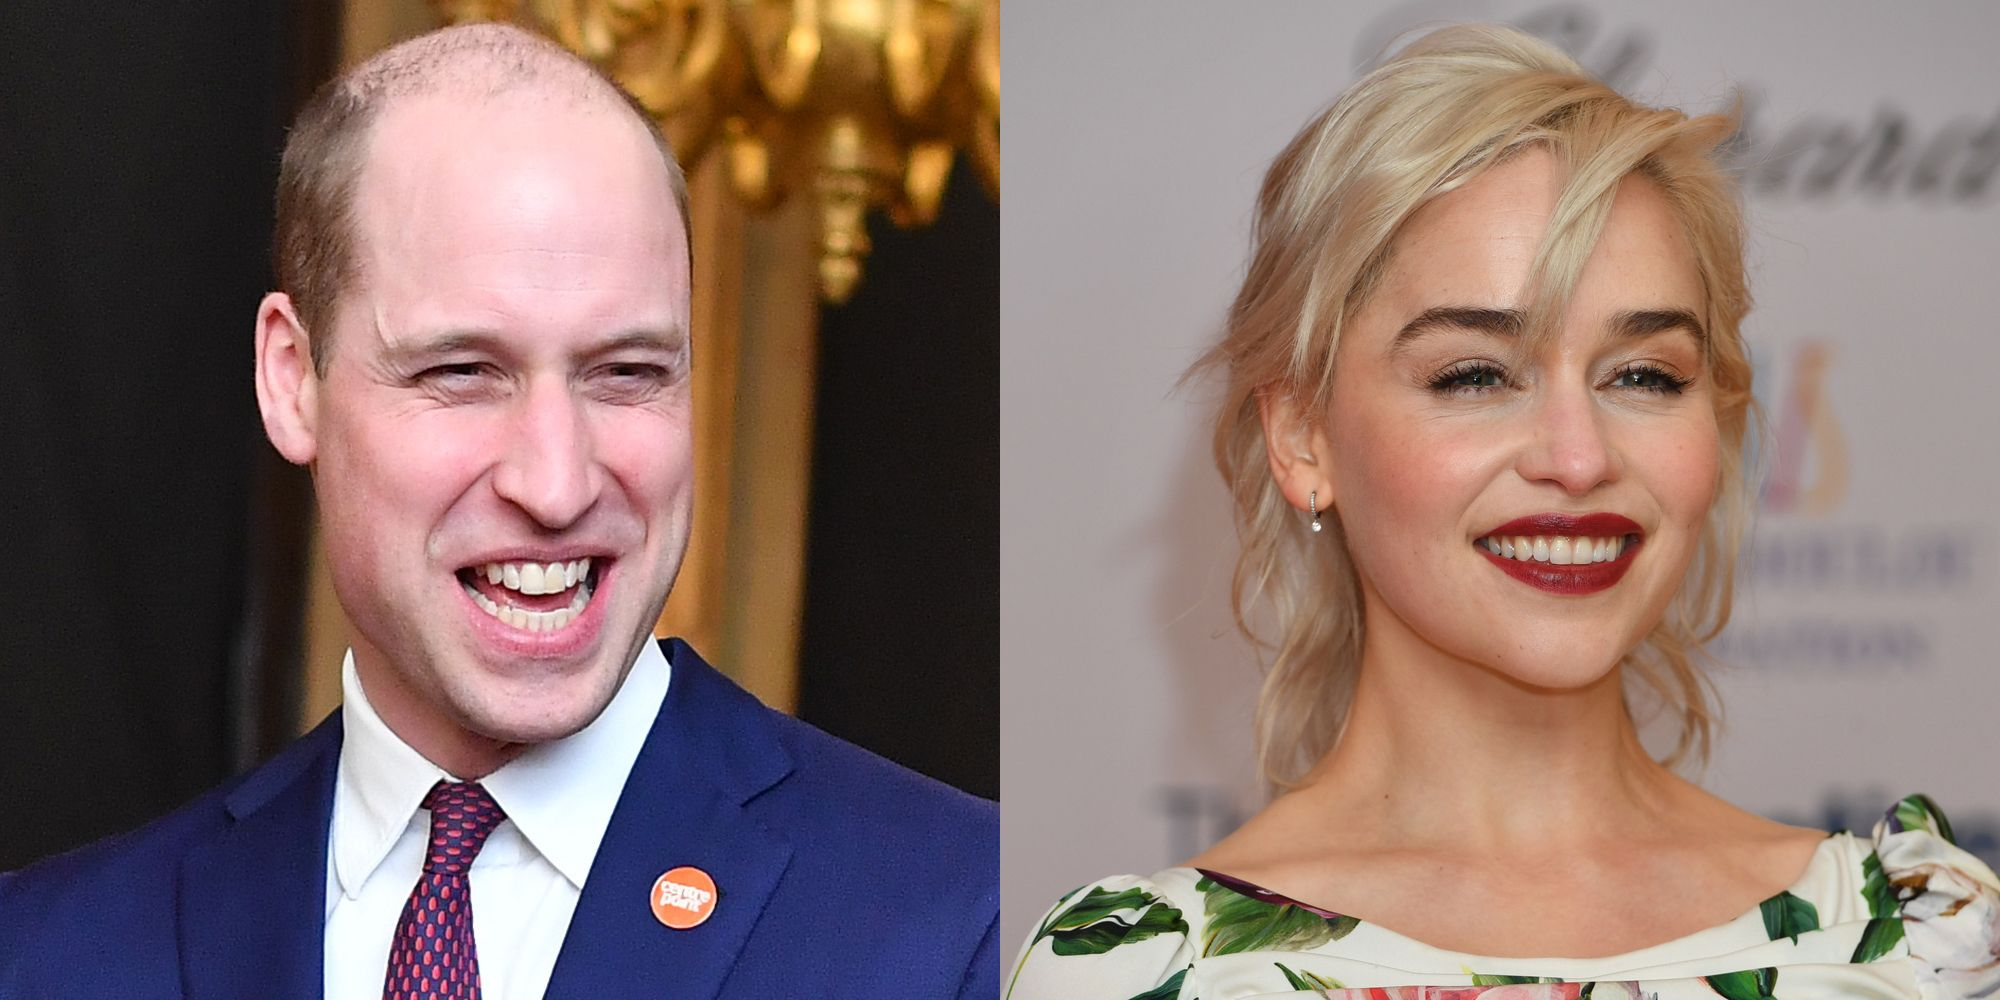 Prince William and Emilia Clarke